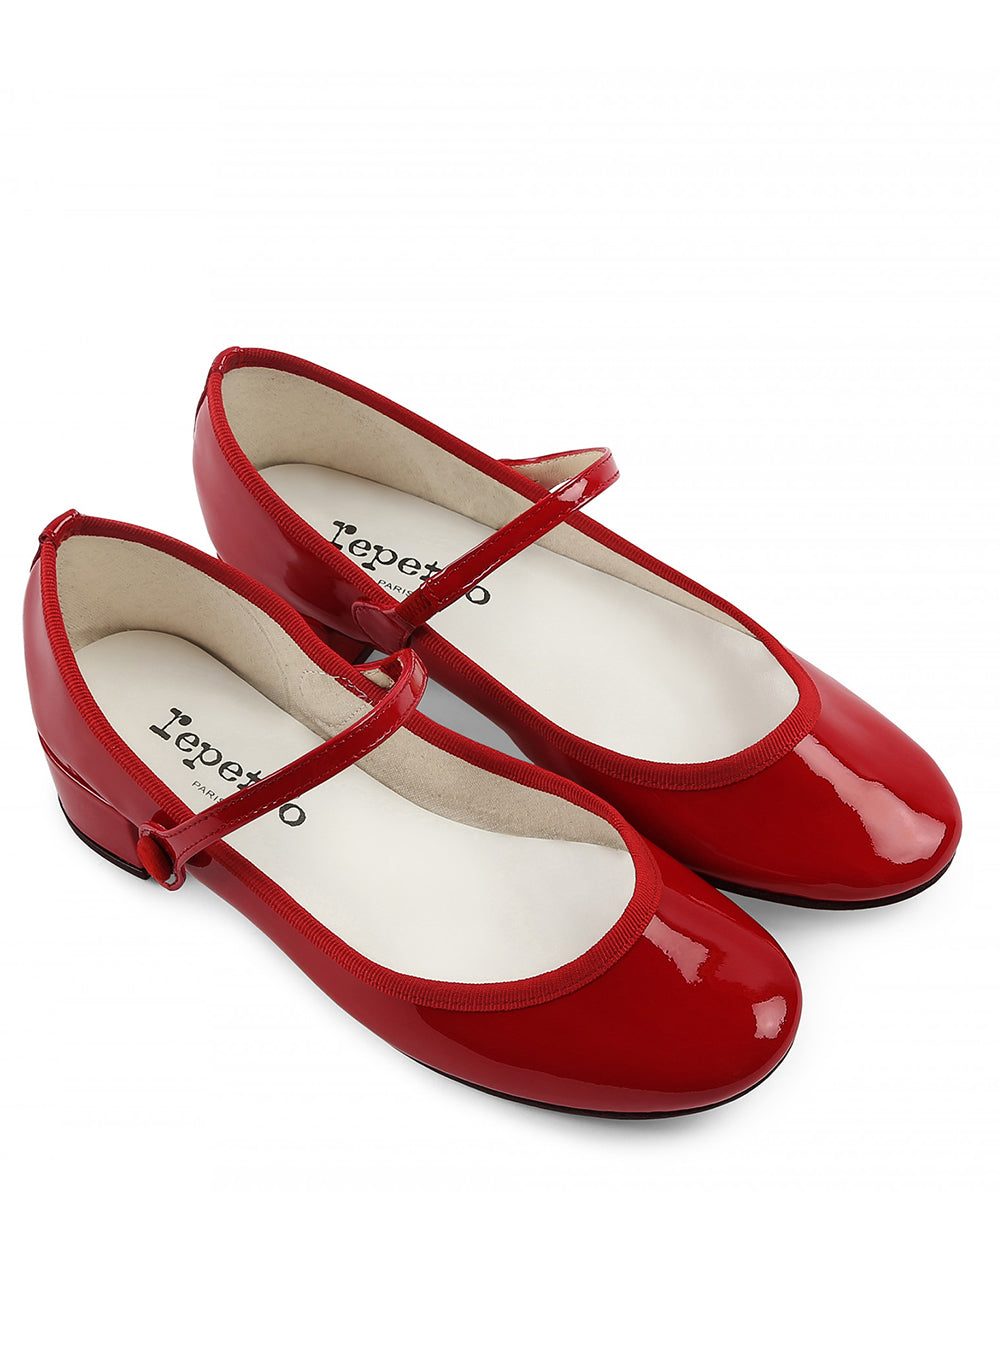 REPETTO | 'Rose' Mary Jane Shoe